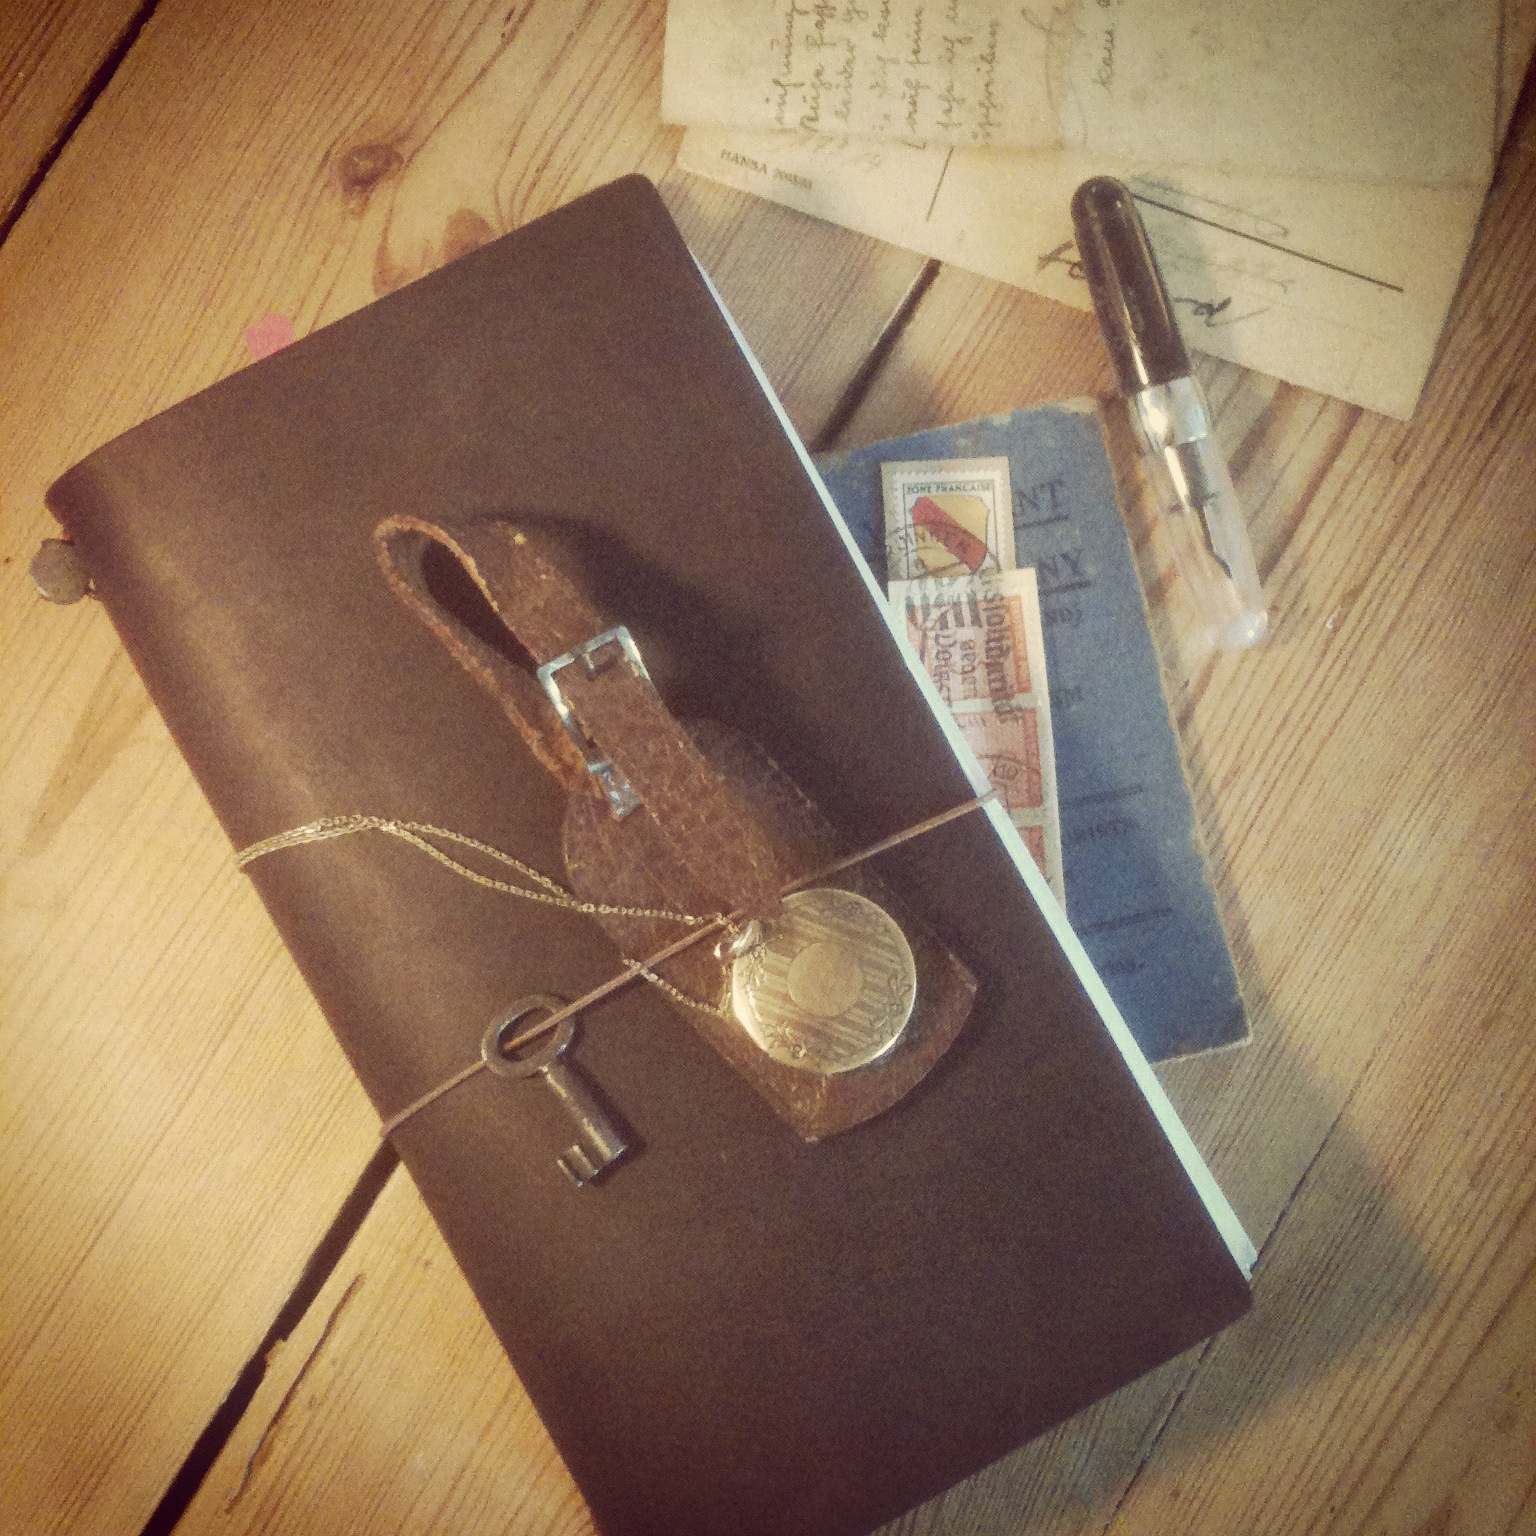 Image of: Rd Spotsylvania Travelers Notebook Stipula Passaporto And Some Old Stuff Nicnilla Nicnilla Midori Travelers Notebook